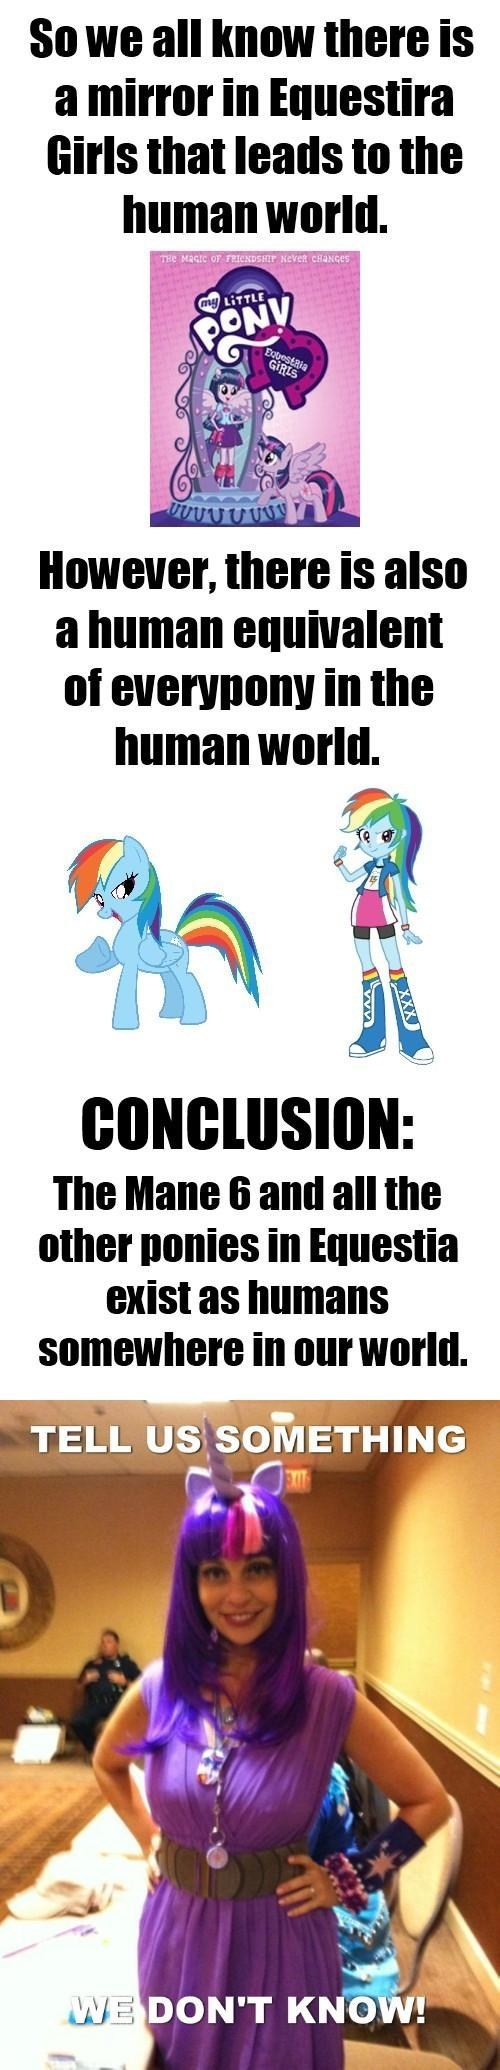 equestria girls tara strong Breaking News - 7613868288